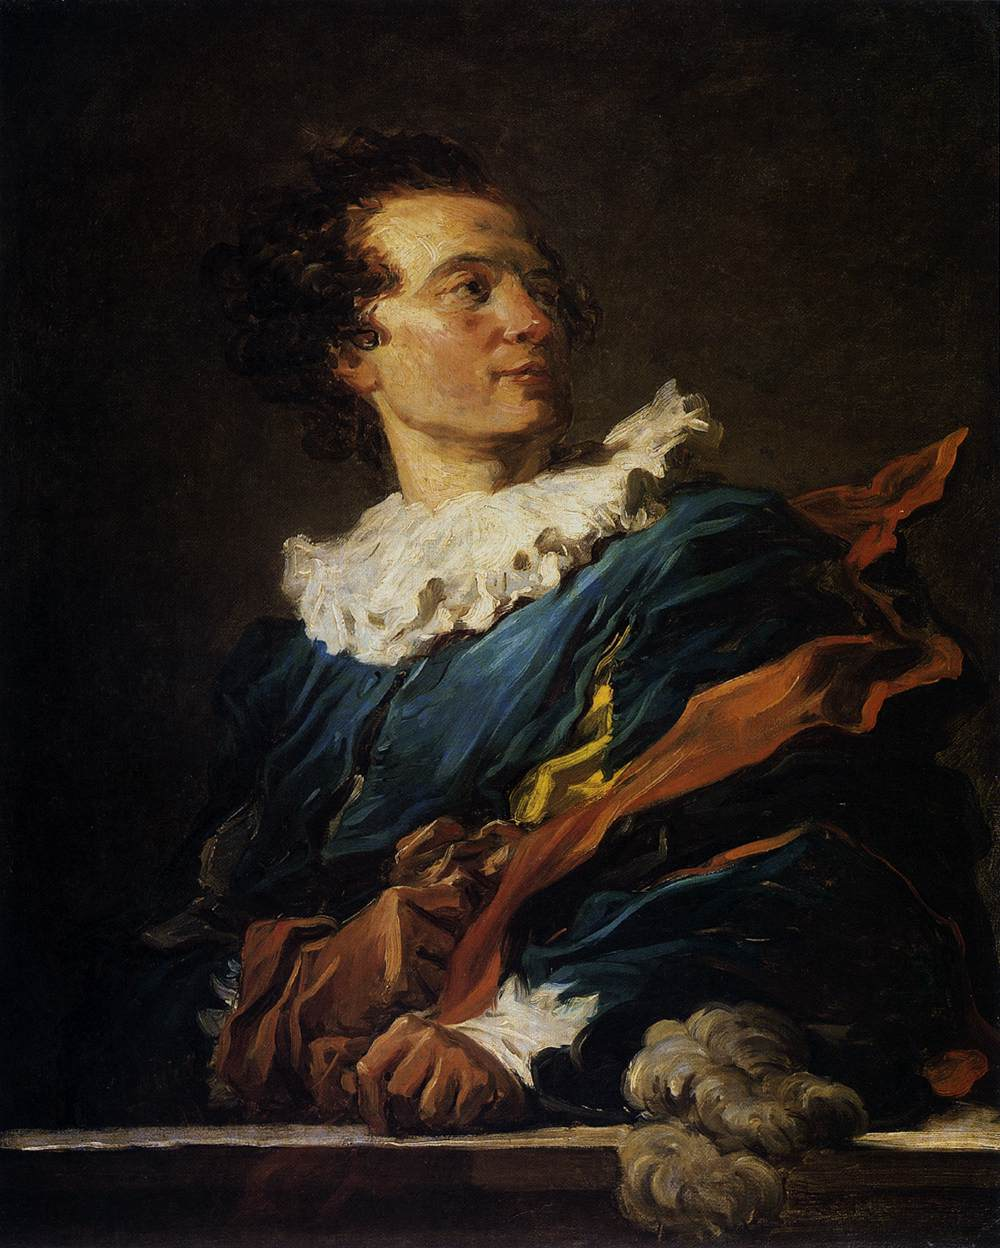 Abbé de Saint-Non (Fanciful Figure)